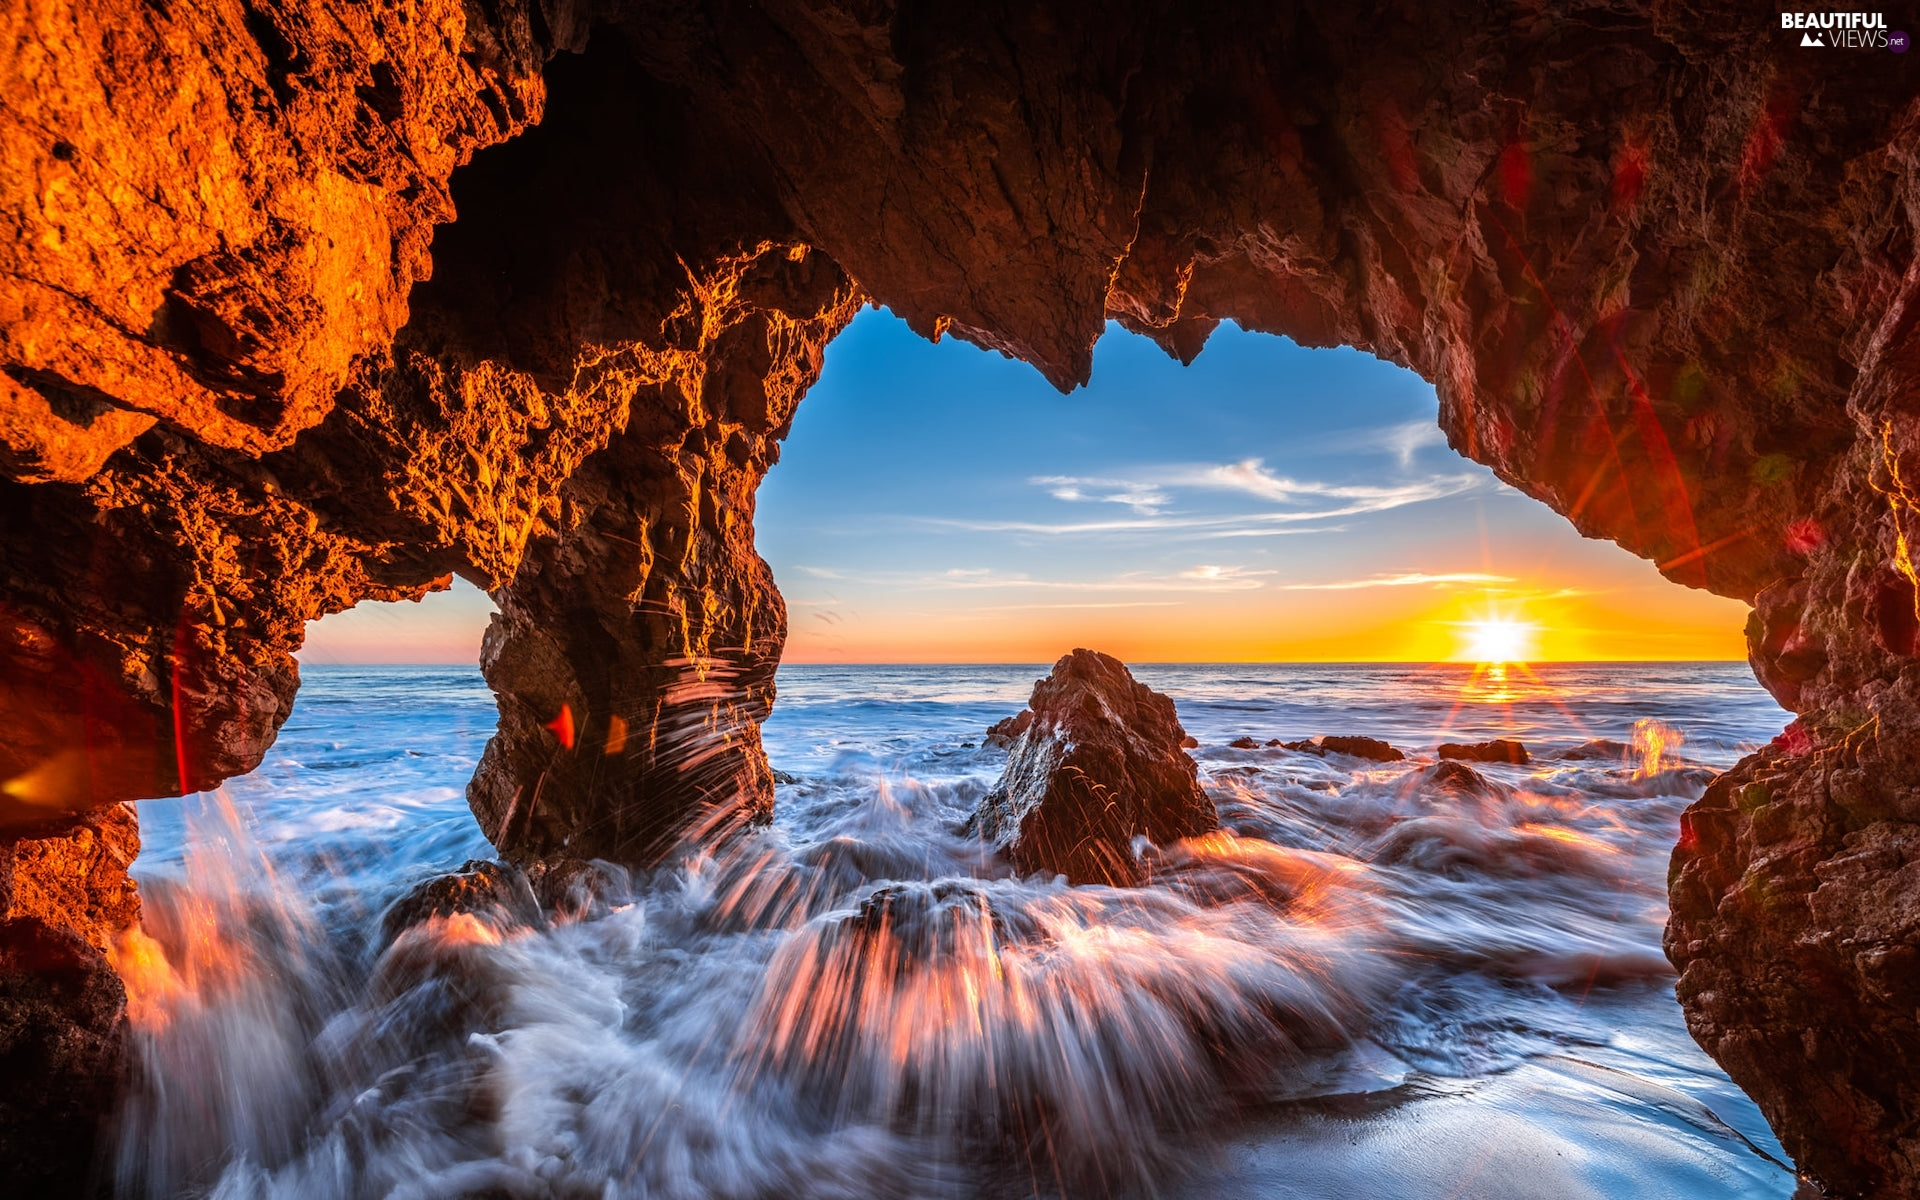 Malibu, sea, Great Sunsets, Waves, cave, California, The United States, rocks